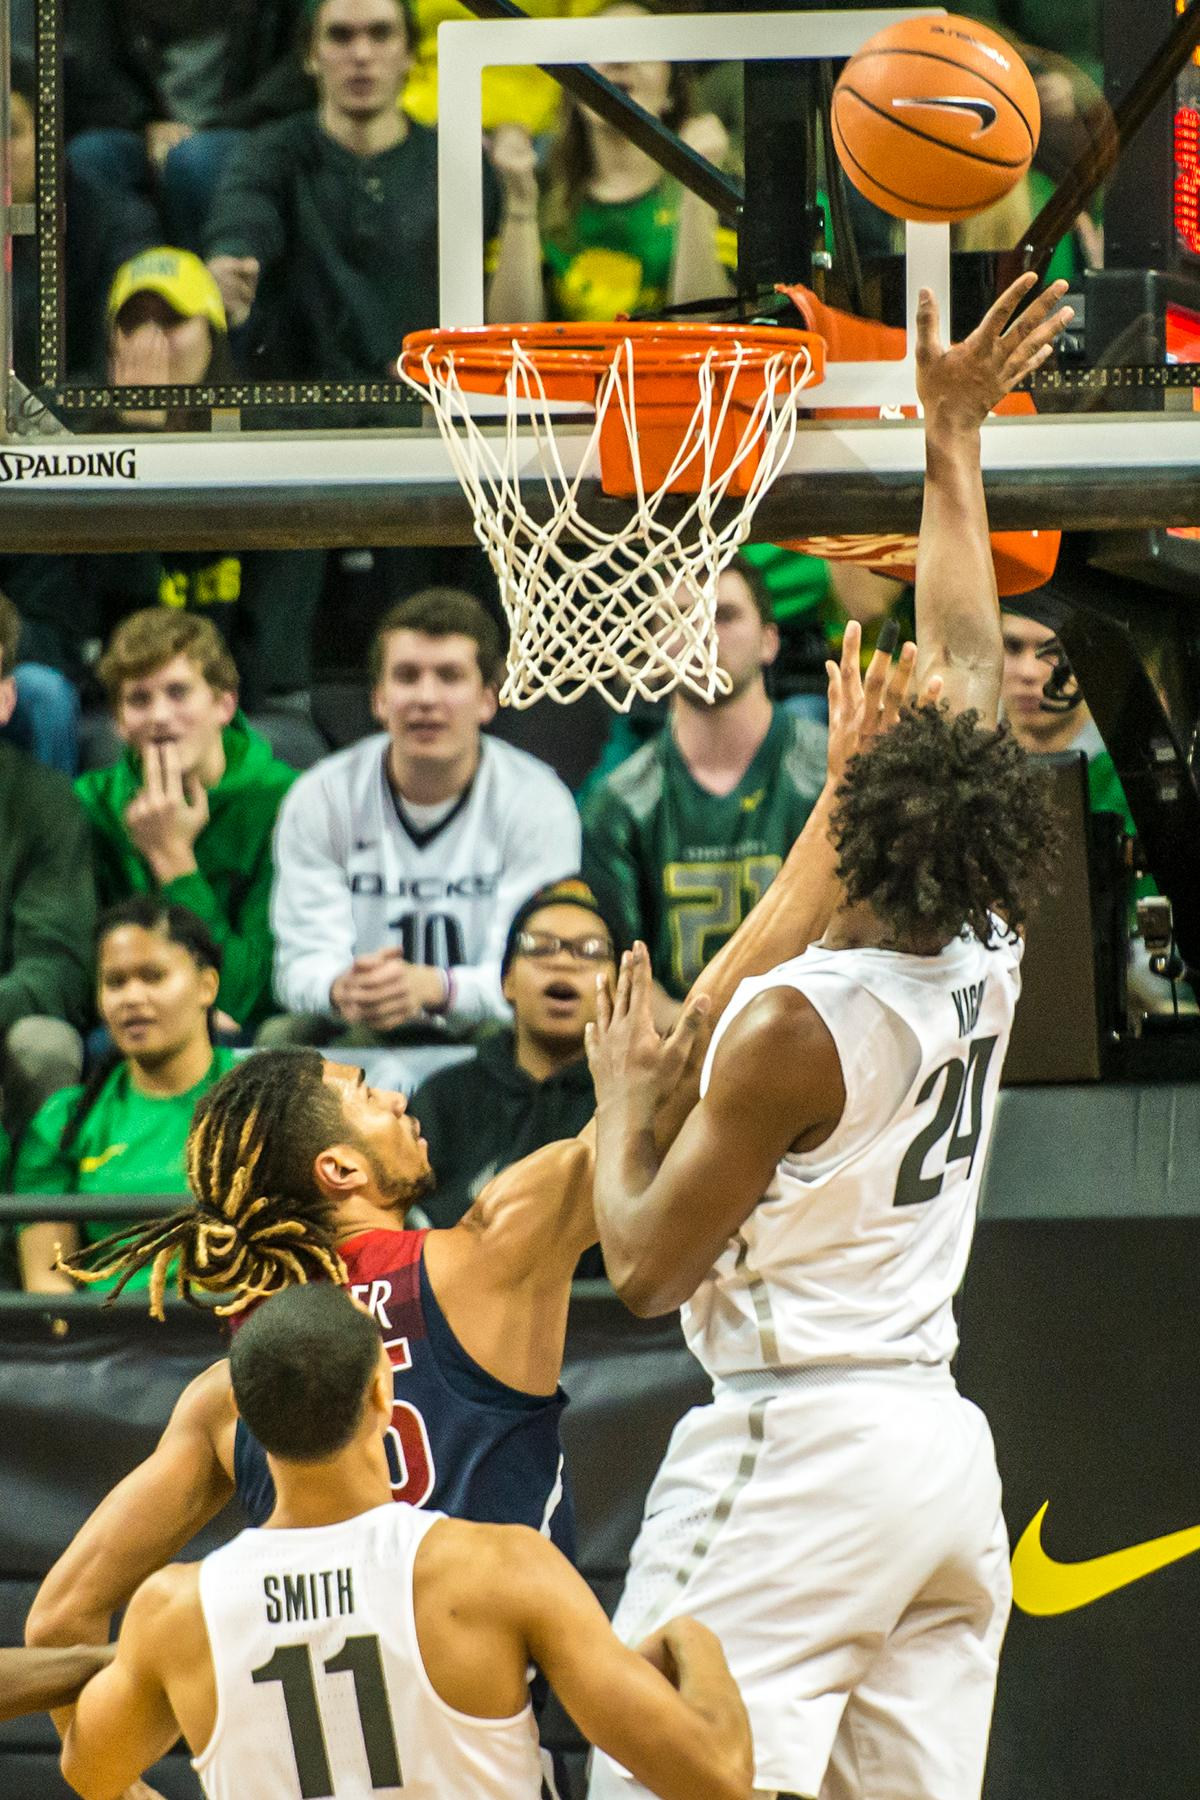 Oregon's Abu Kigab goes for a layup against Arizona defenders in their matchup at Matthew Knight Arena Saturday. The Ducks upset the fourteenth ranked Wildcats 98-93 in a stunning overtime win in front of a packed house of over 12,000 fans for their final home game to improve to a 19-10 (9-7 PAC-12) record on the season. Oregon will finish out regular season play on the road in Washington next week against Washington State on Thursday, then Washington on the following Saturday. (Photo by Colin Houck)